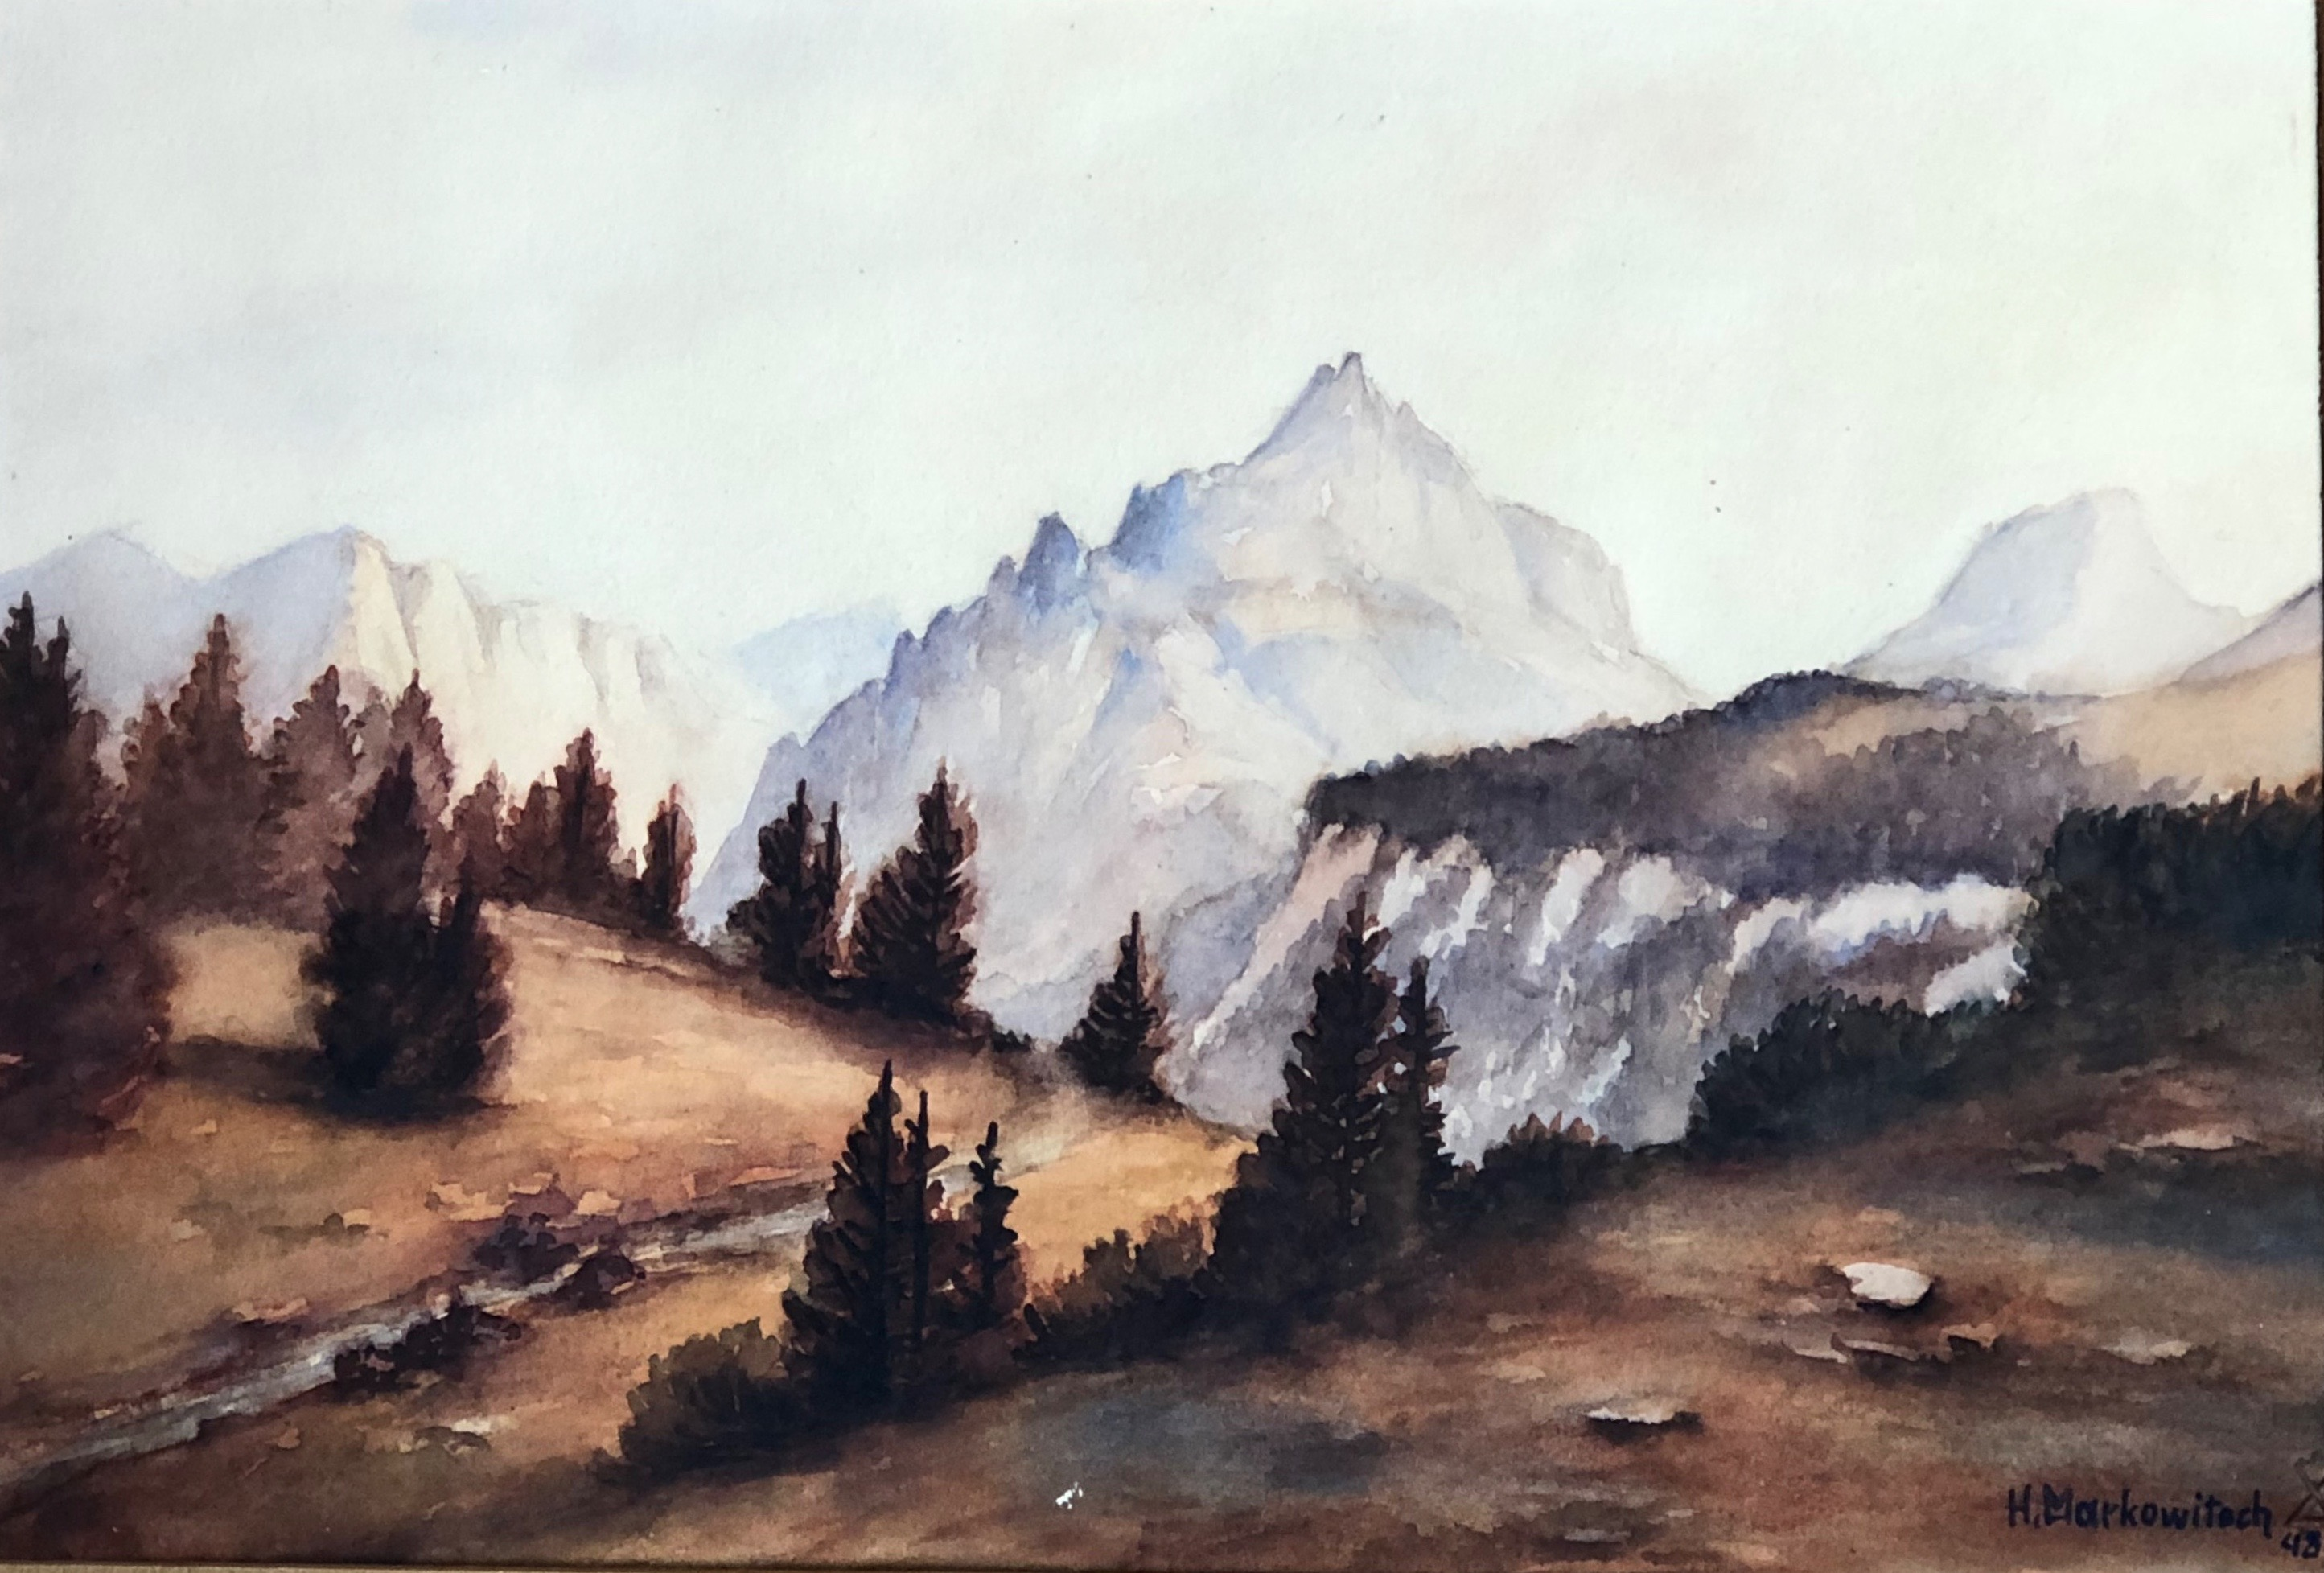 Painting of Die Griessmauer from camp 5. Artist H. Markowitech 1948